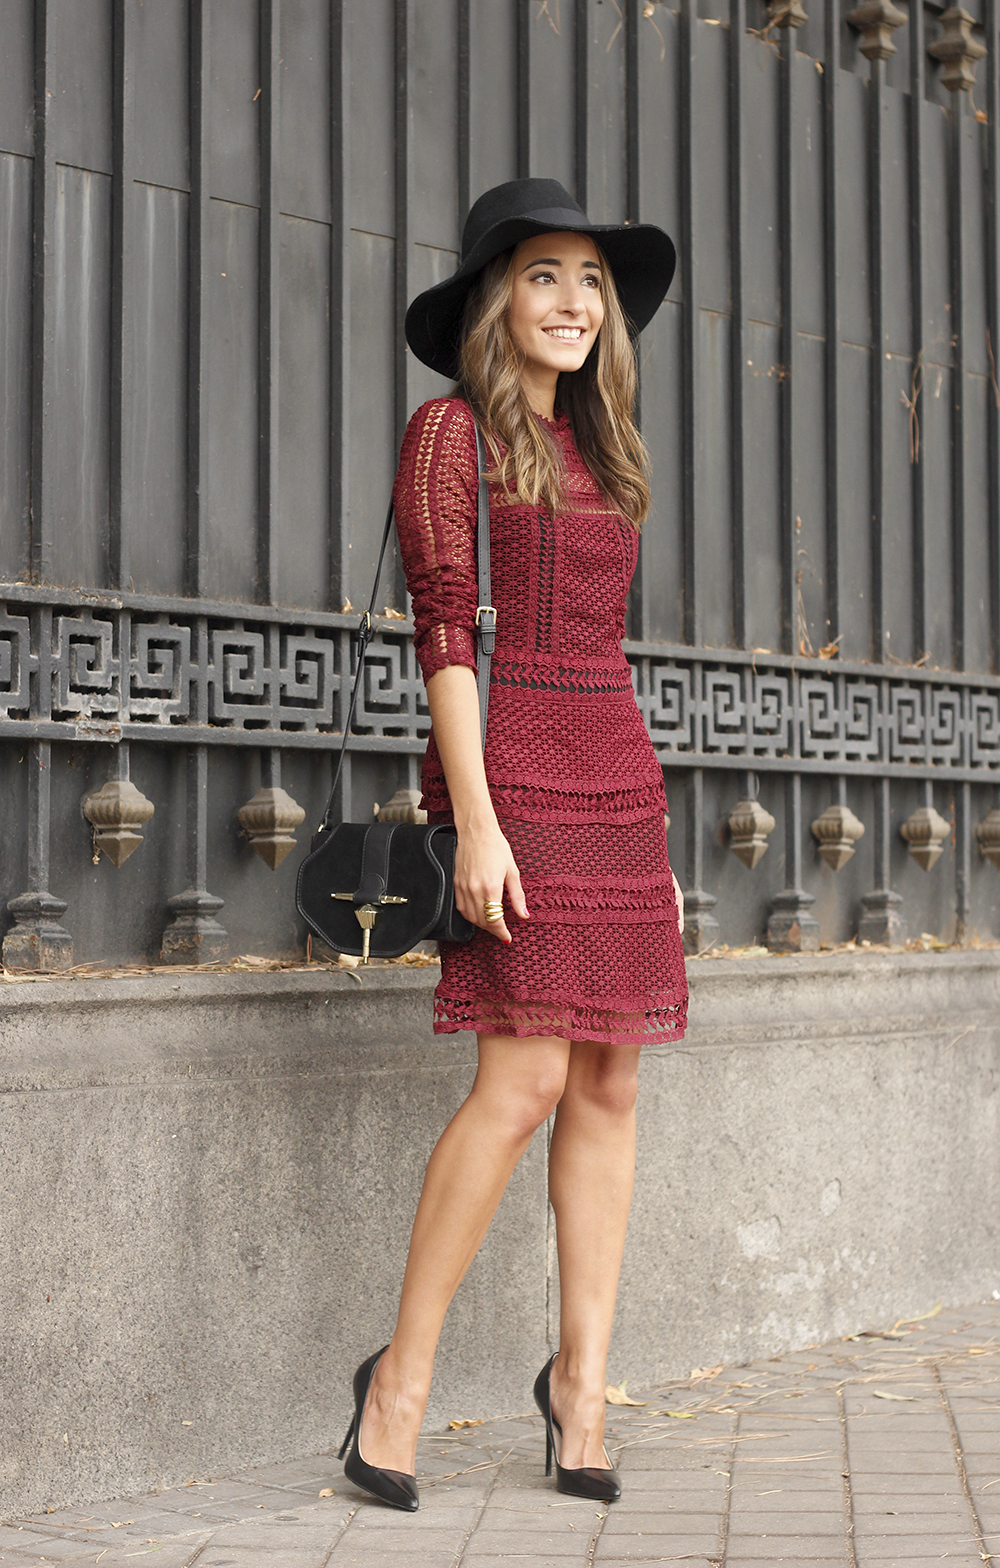 burgundy lace dress black heels hat accessories outfit fashion style03